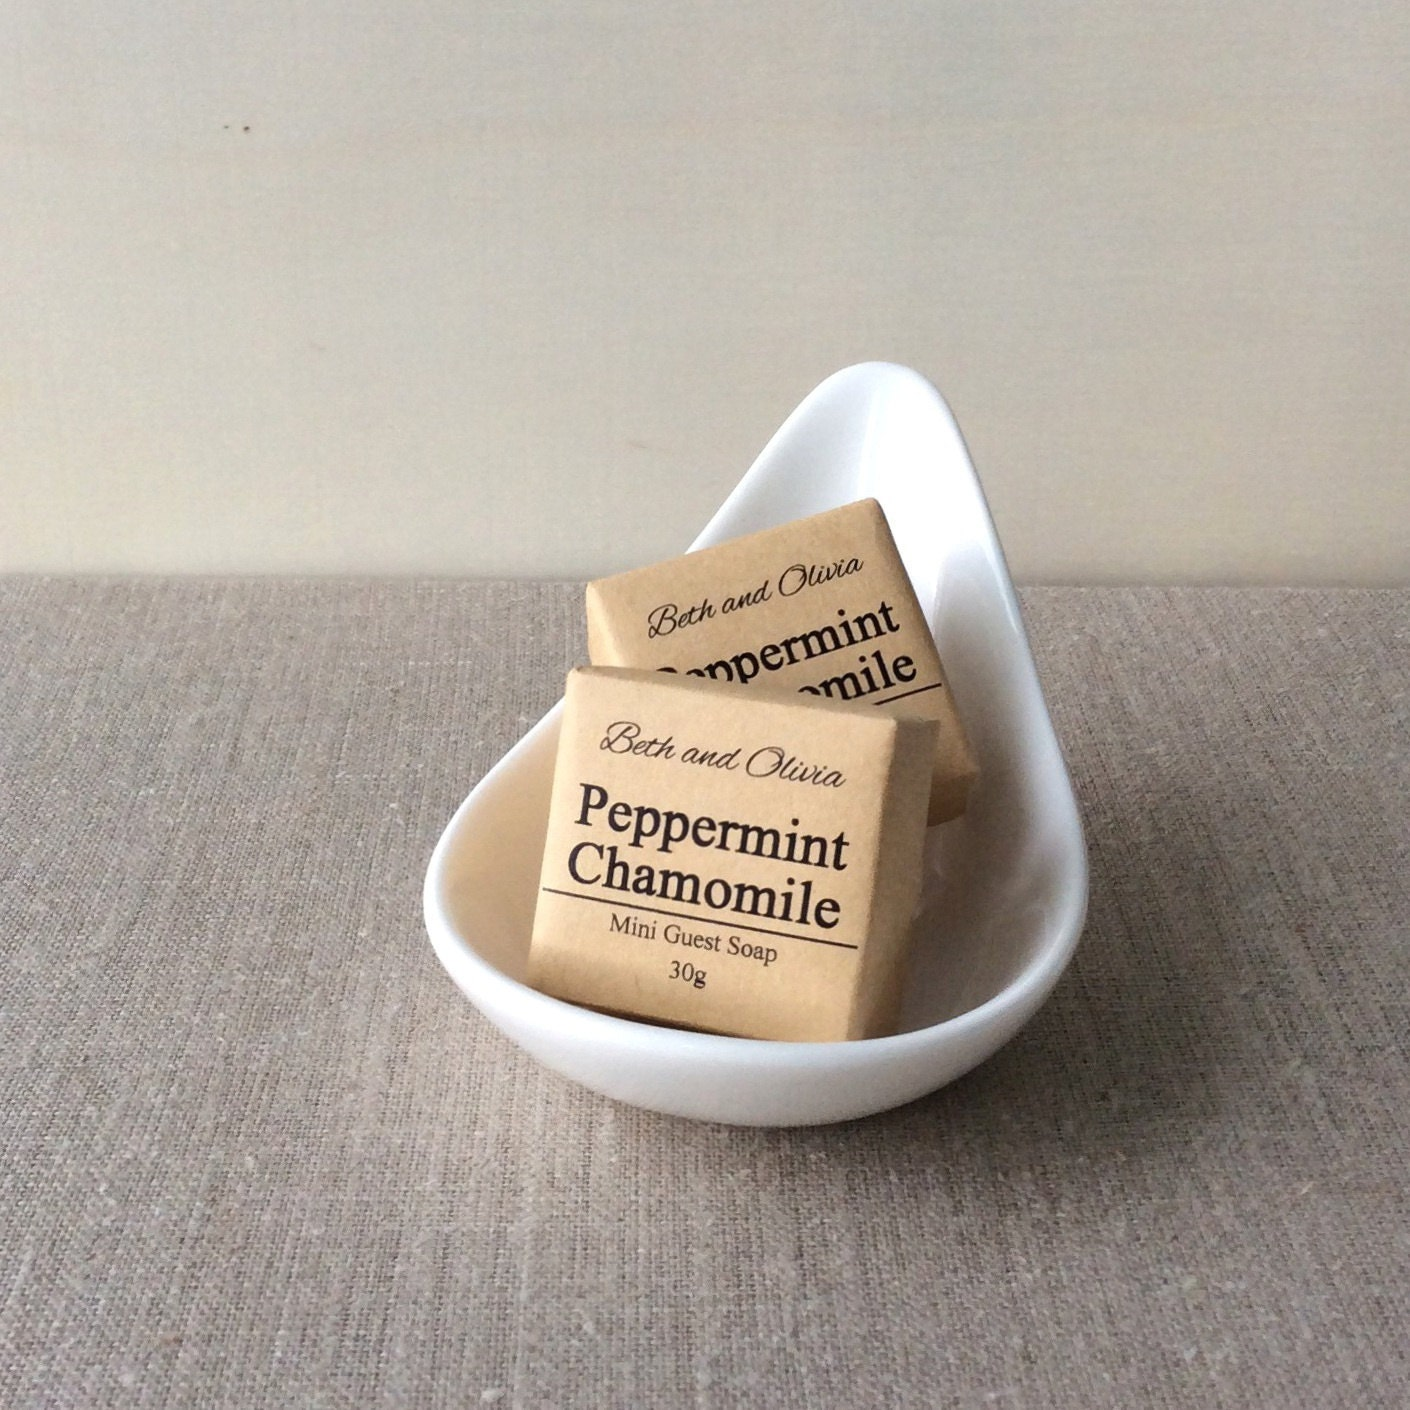 Peppermint chamomile Mini Guest Soap, wedding favors, soap favors, peppermint soap, chamomile soap, mini soap, bridal shower favors,